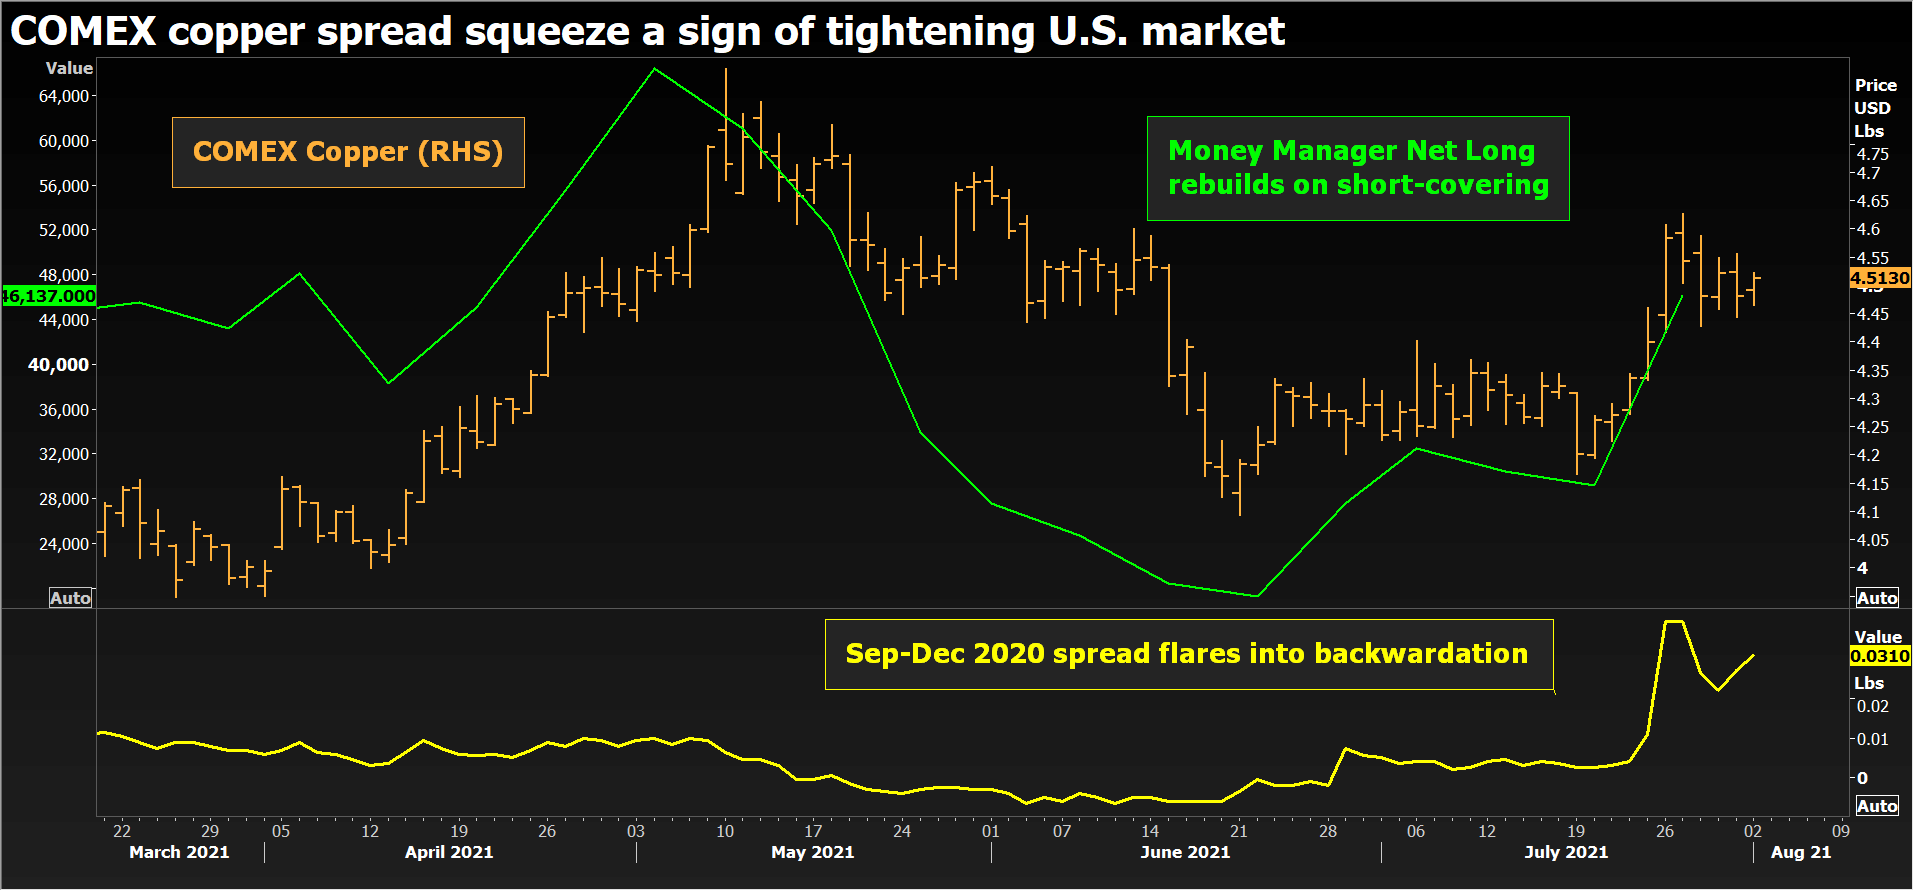 Comex copper spread squeeze a sign of tightening US market